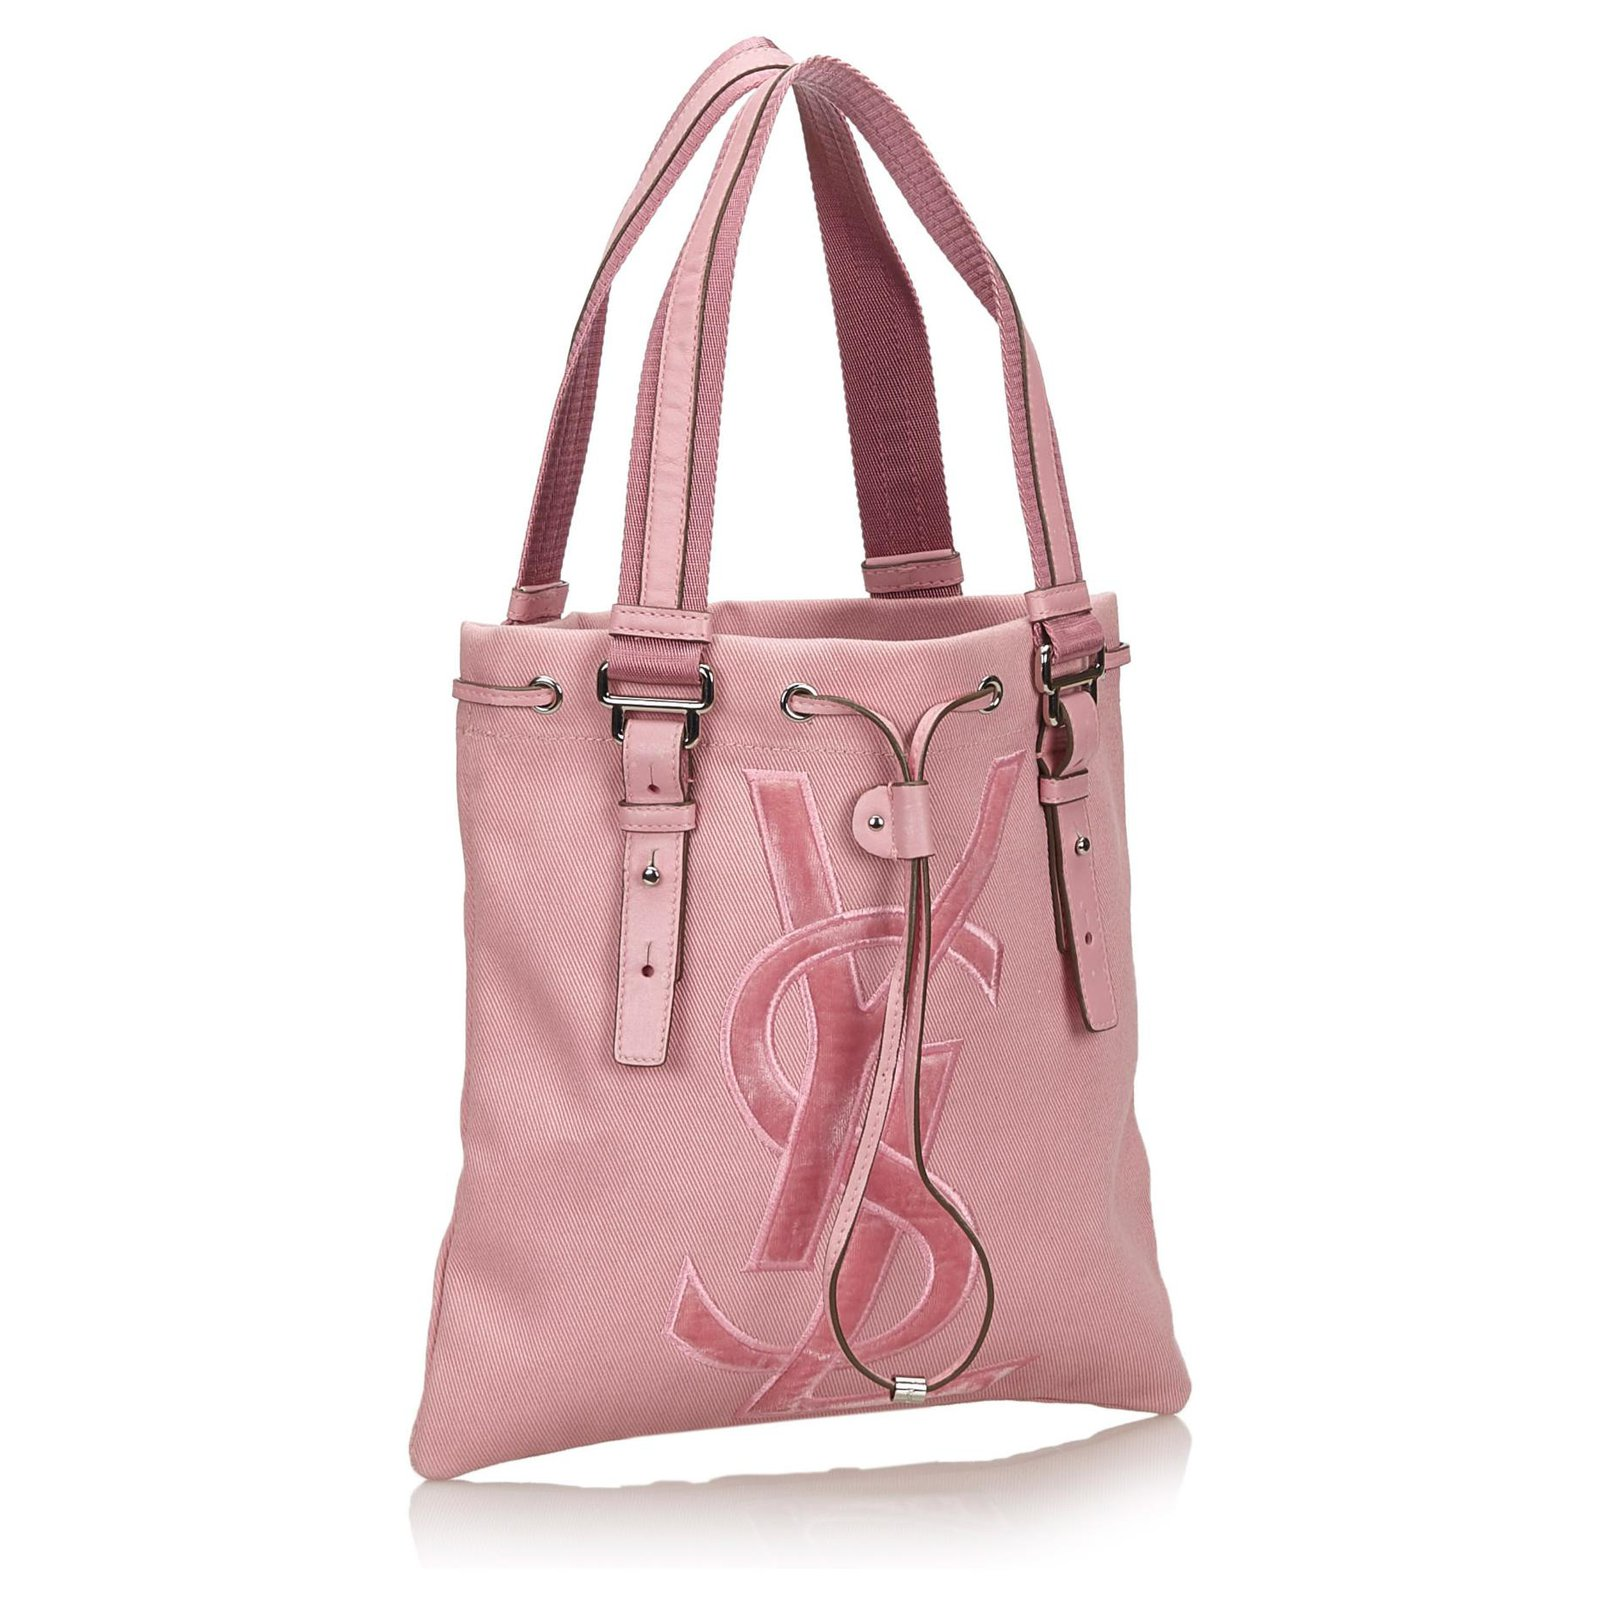 79332a391ac Yves Saint Laurent YSL Pink Canvas Kahala Tote Bag Totes Leather,Other,Cloth ,Cloth Pink ref.136771 - Joli Closet